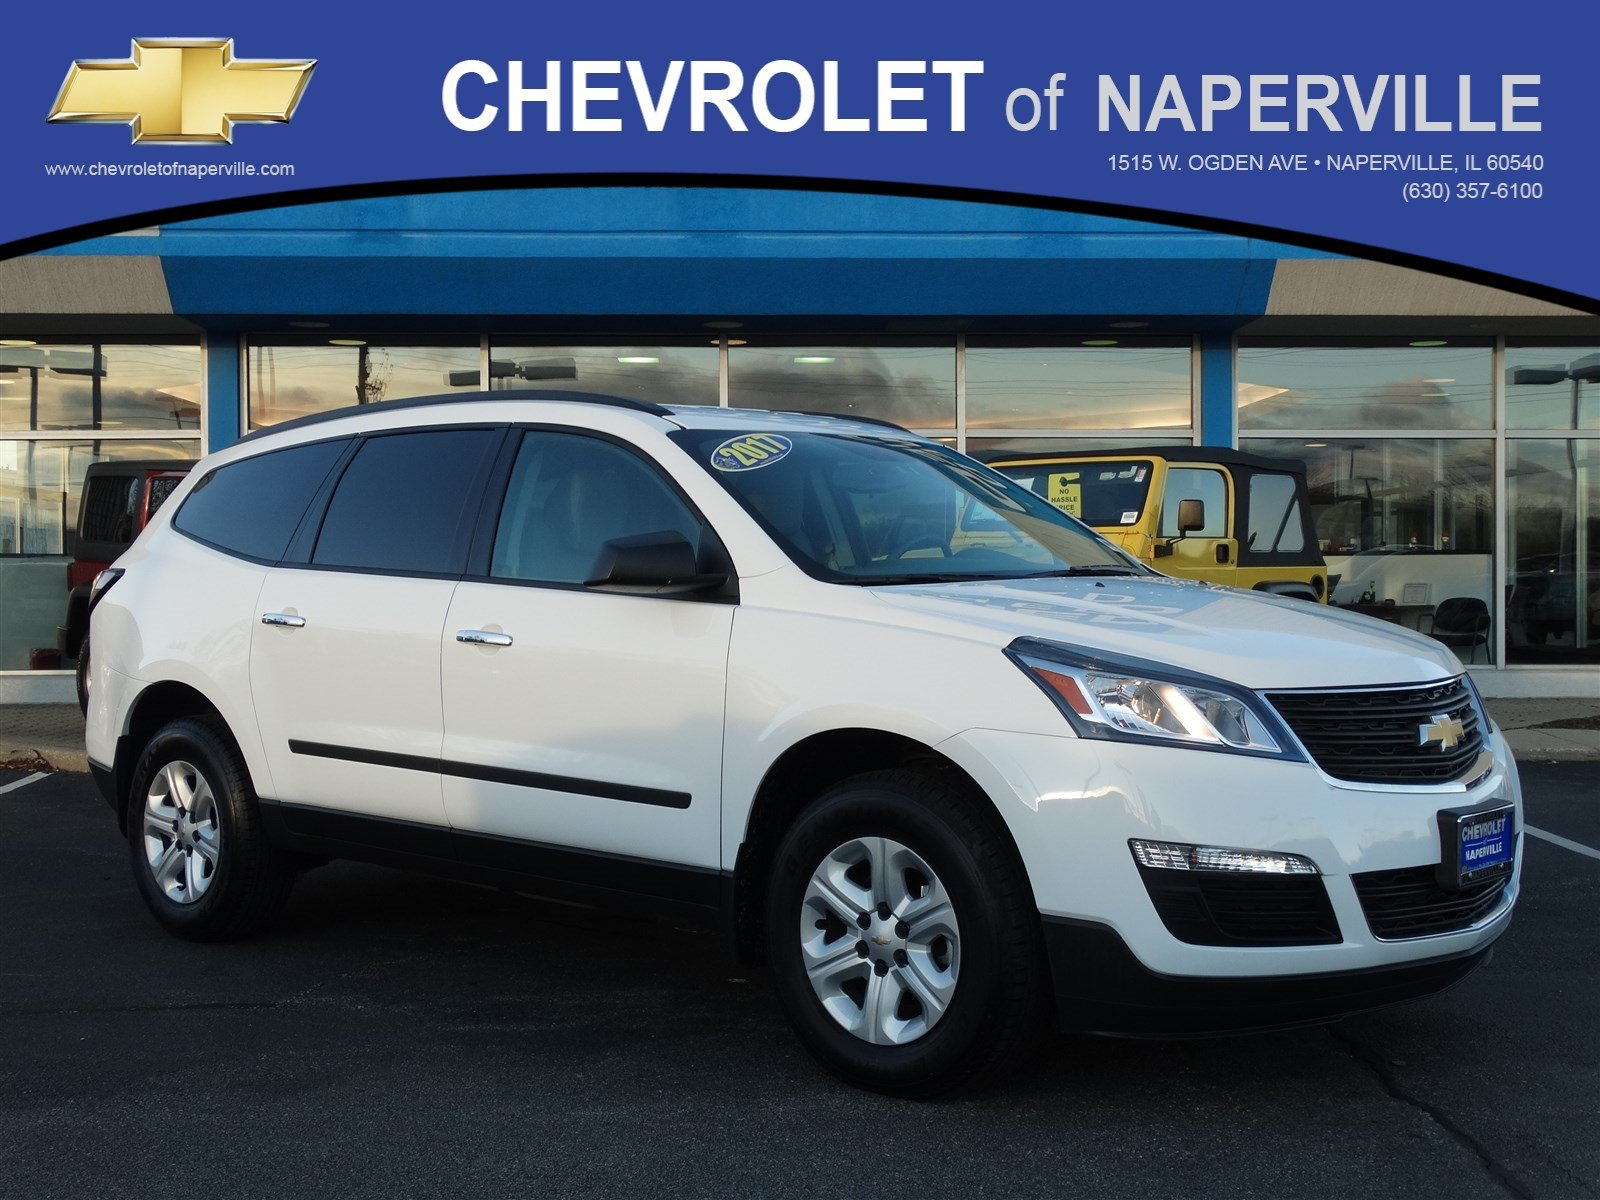 pre owned 2017 chevrolet traverse ls sport utility in naperville l0715 chevrolet of naperville. Black Bedroom Furniture Sets. Home Design Ideas